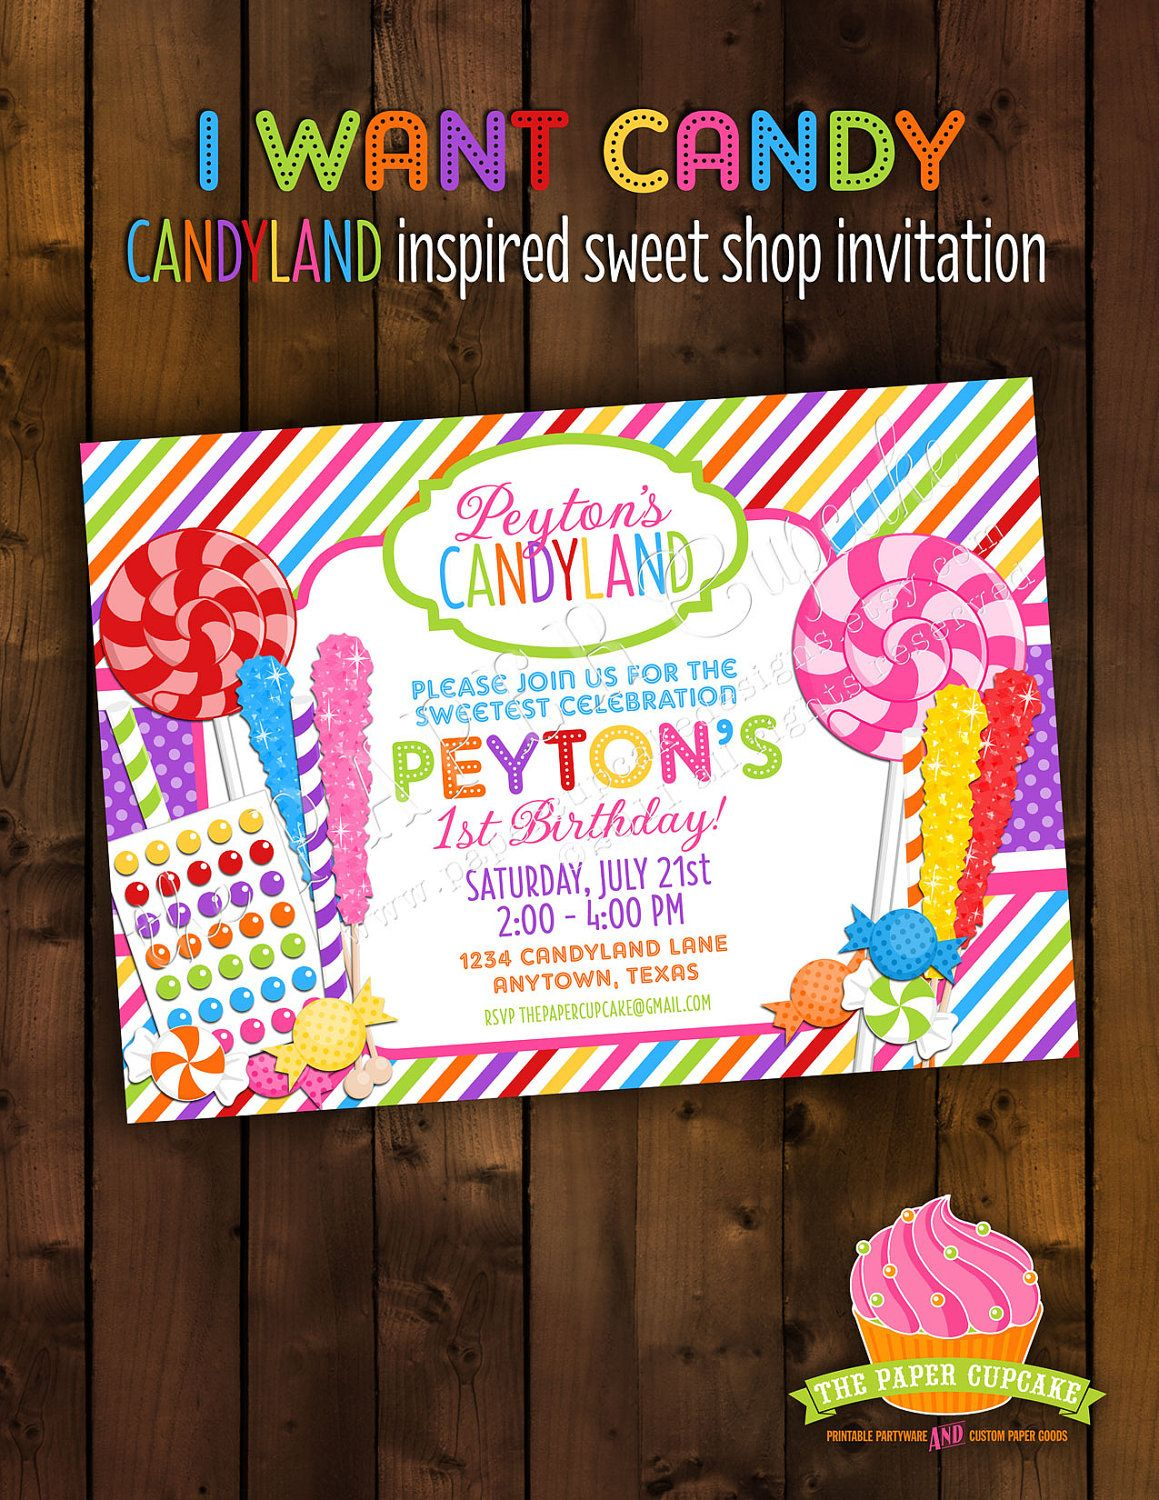 Printable Invitation Design - I Want Candy - Candyland Inspired ...